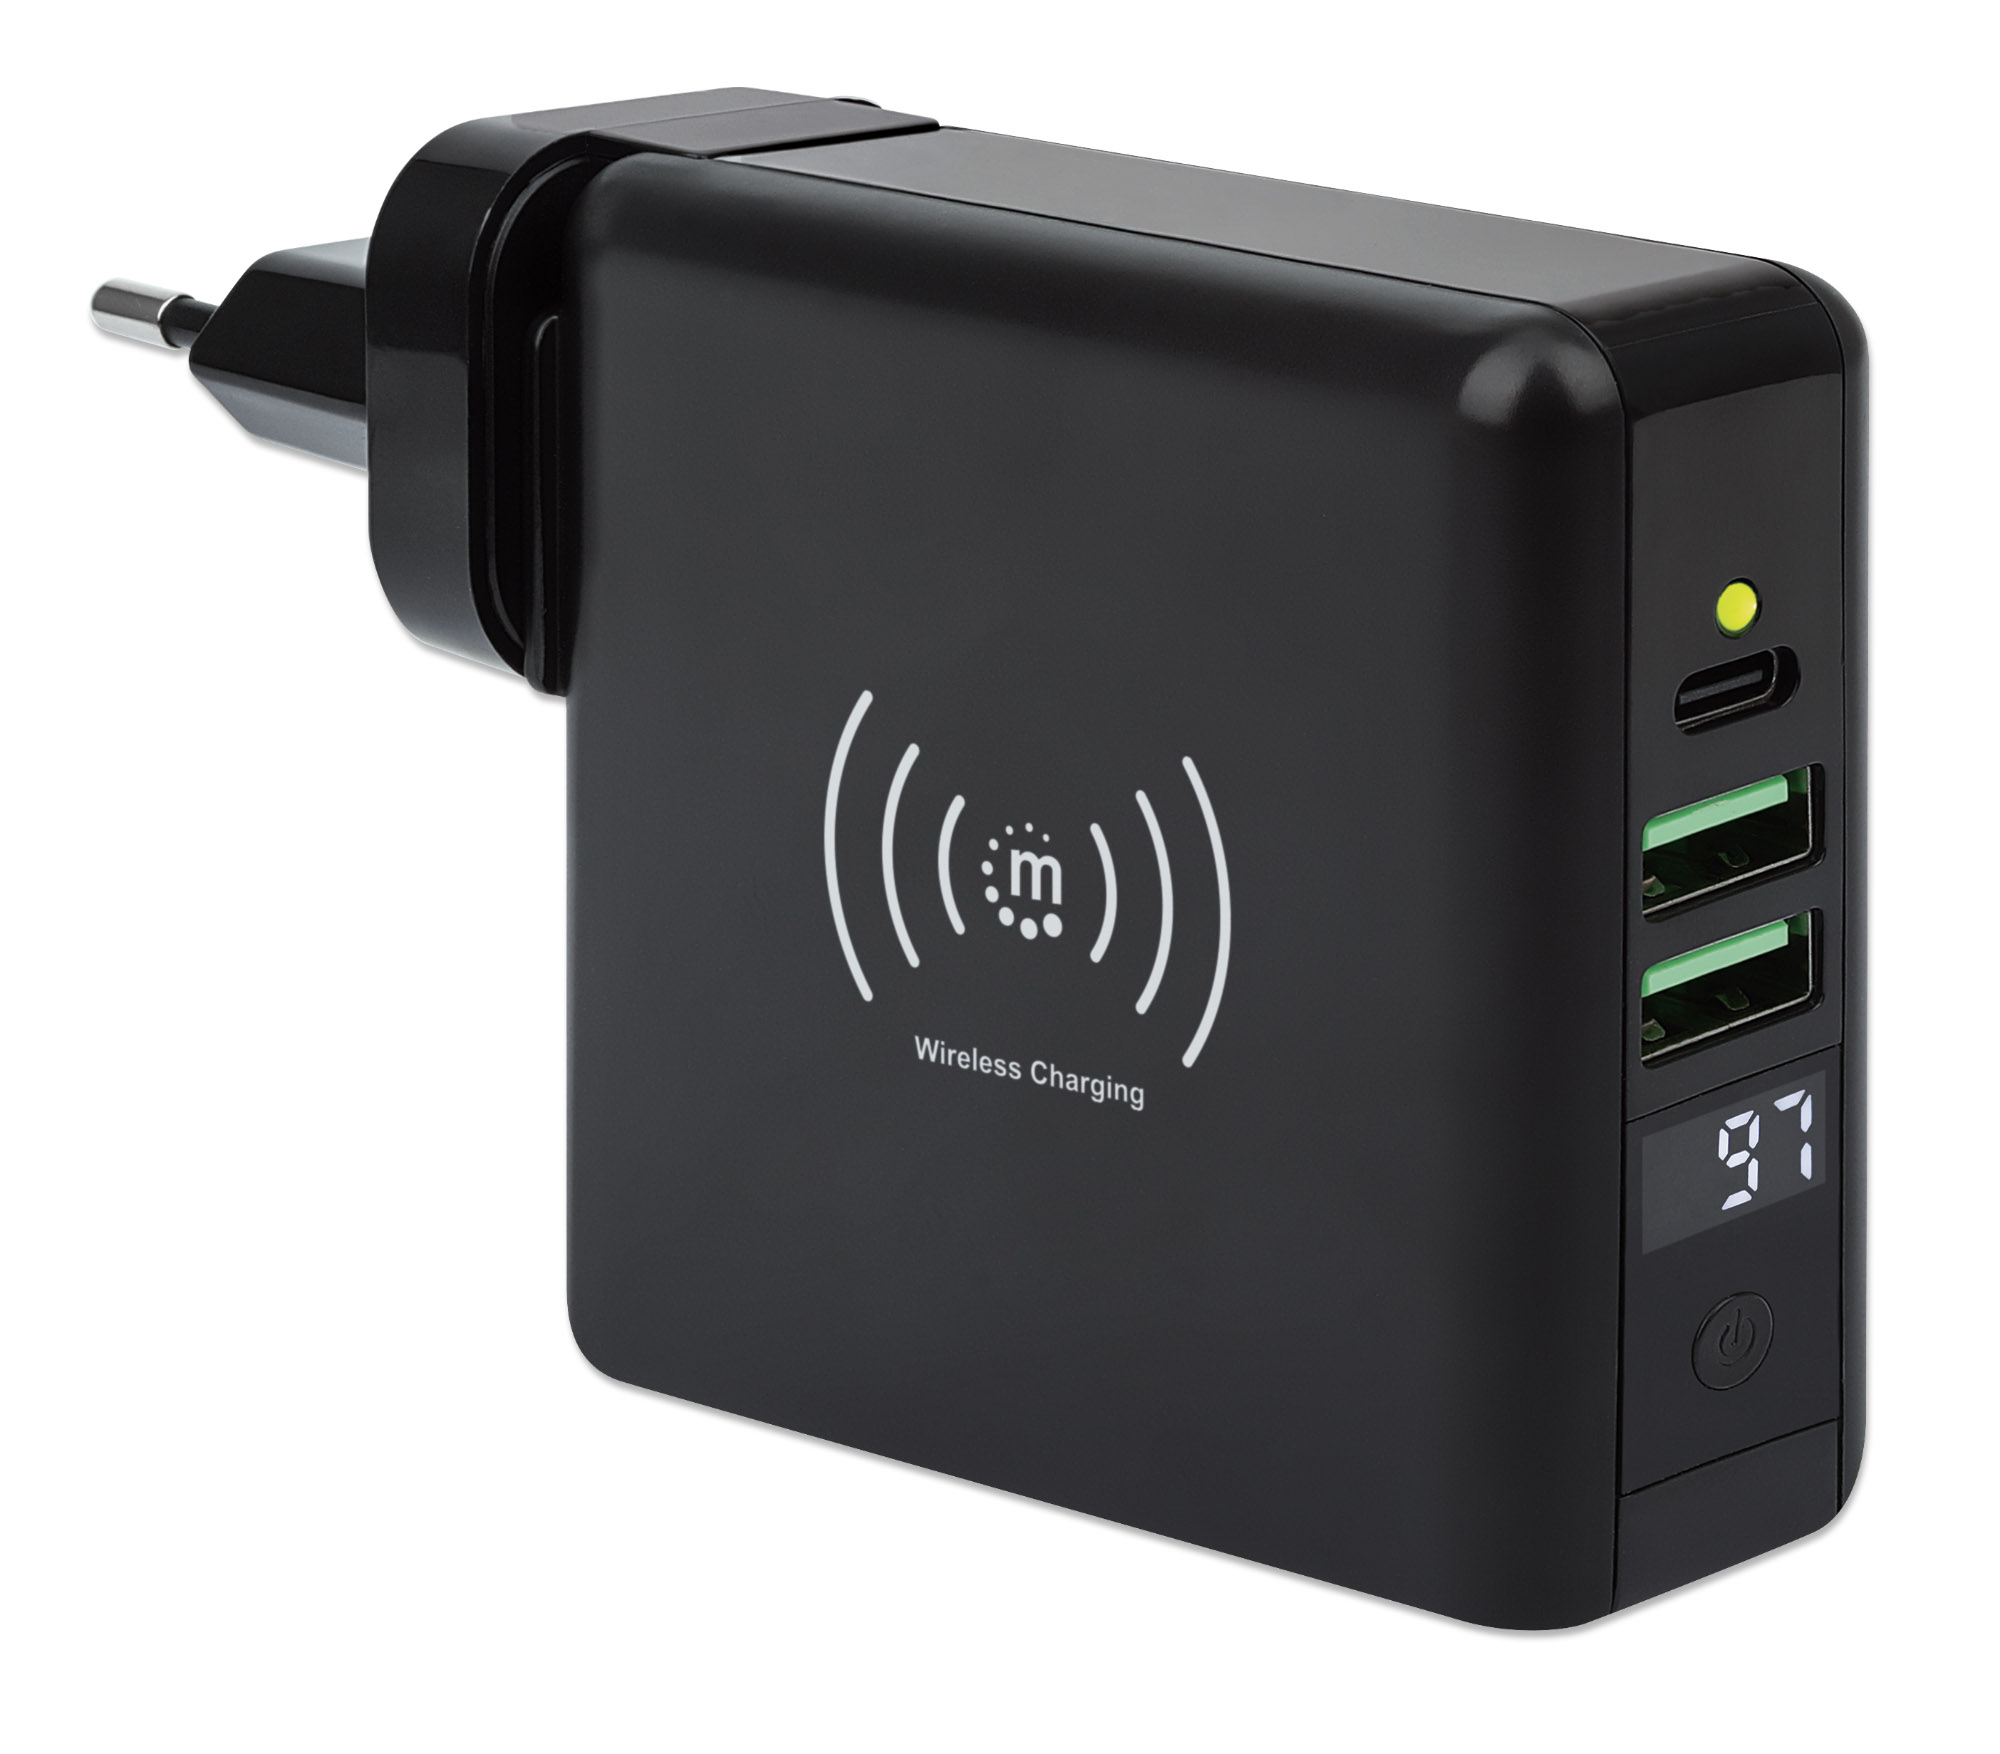 4-in-1 Travel Wall Charger and Powerbank 8,000 mAh